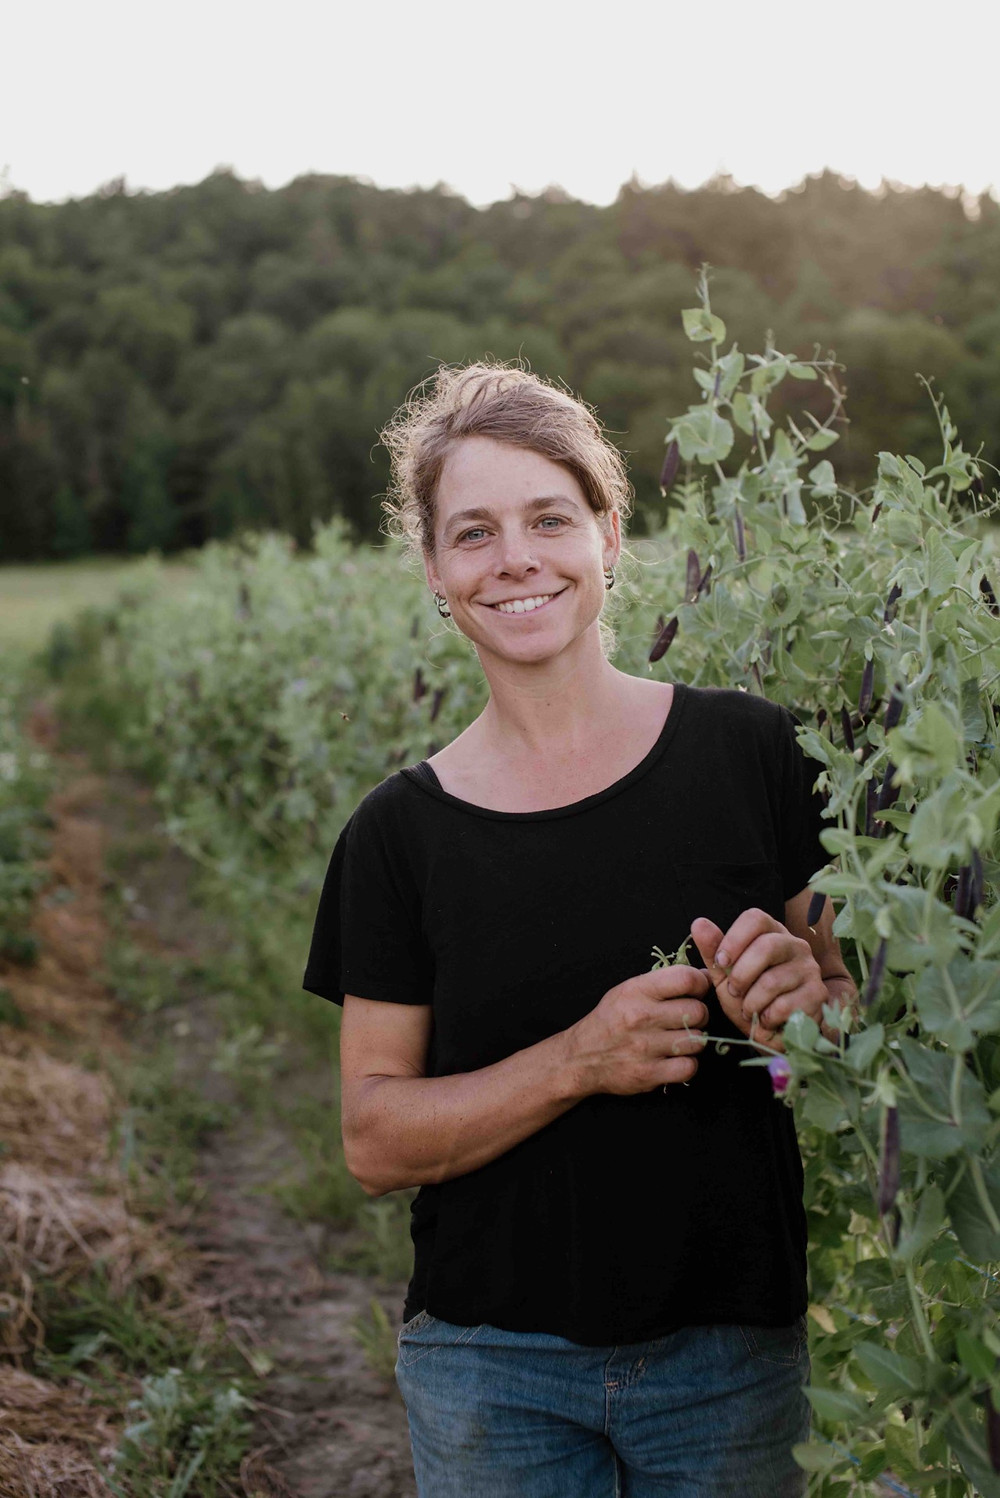 This is Northern Seeds owner Catherine Wallenburg's ninth season growing and selling seeds. She used to only sell to other seed companies, but she launched her company in Farrellton last year to sell directly to gardeners. Anne-Marie Laplante photo courtesy Northern Seeds